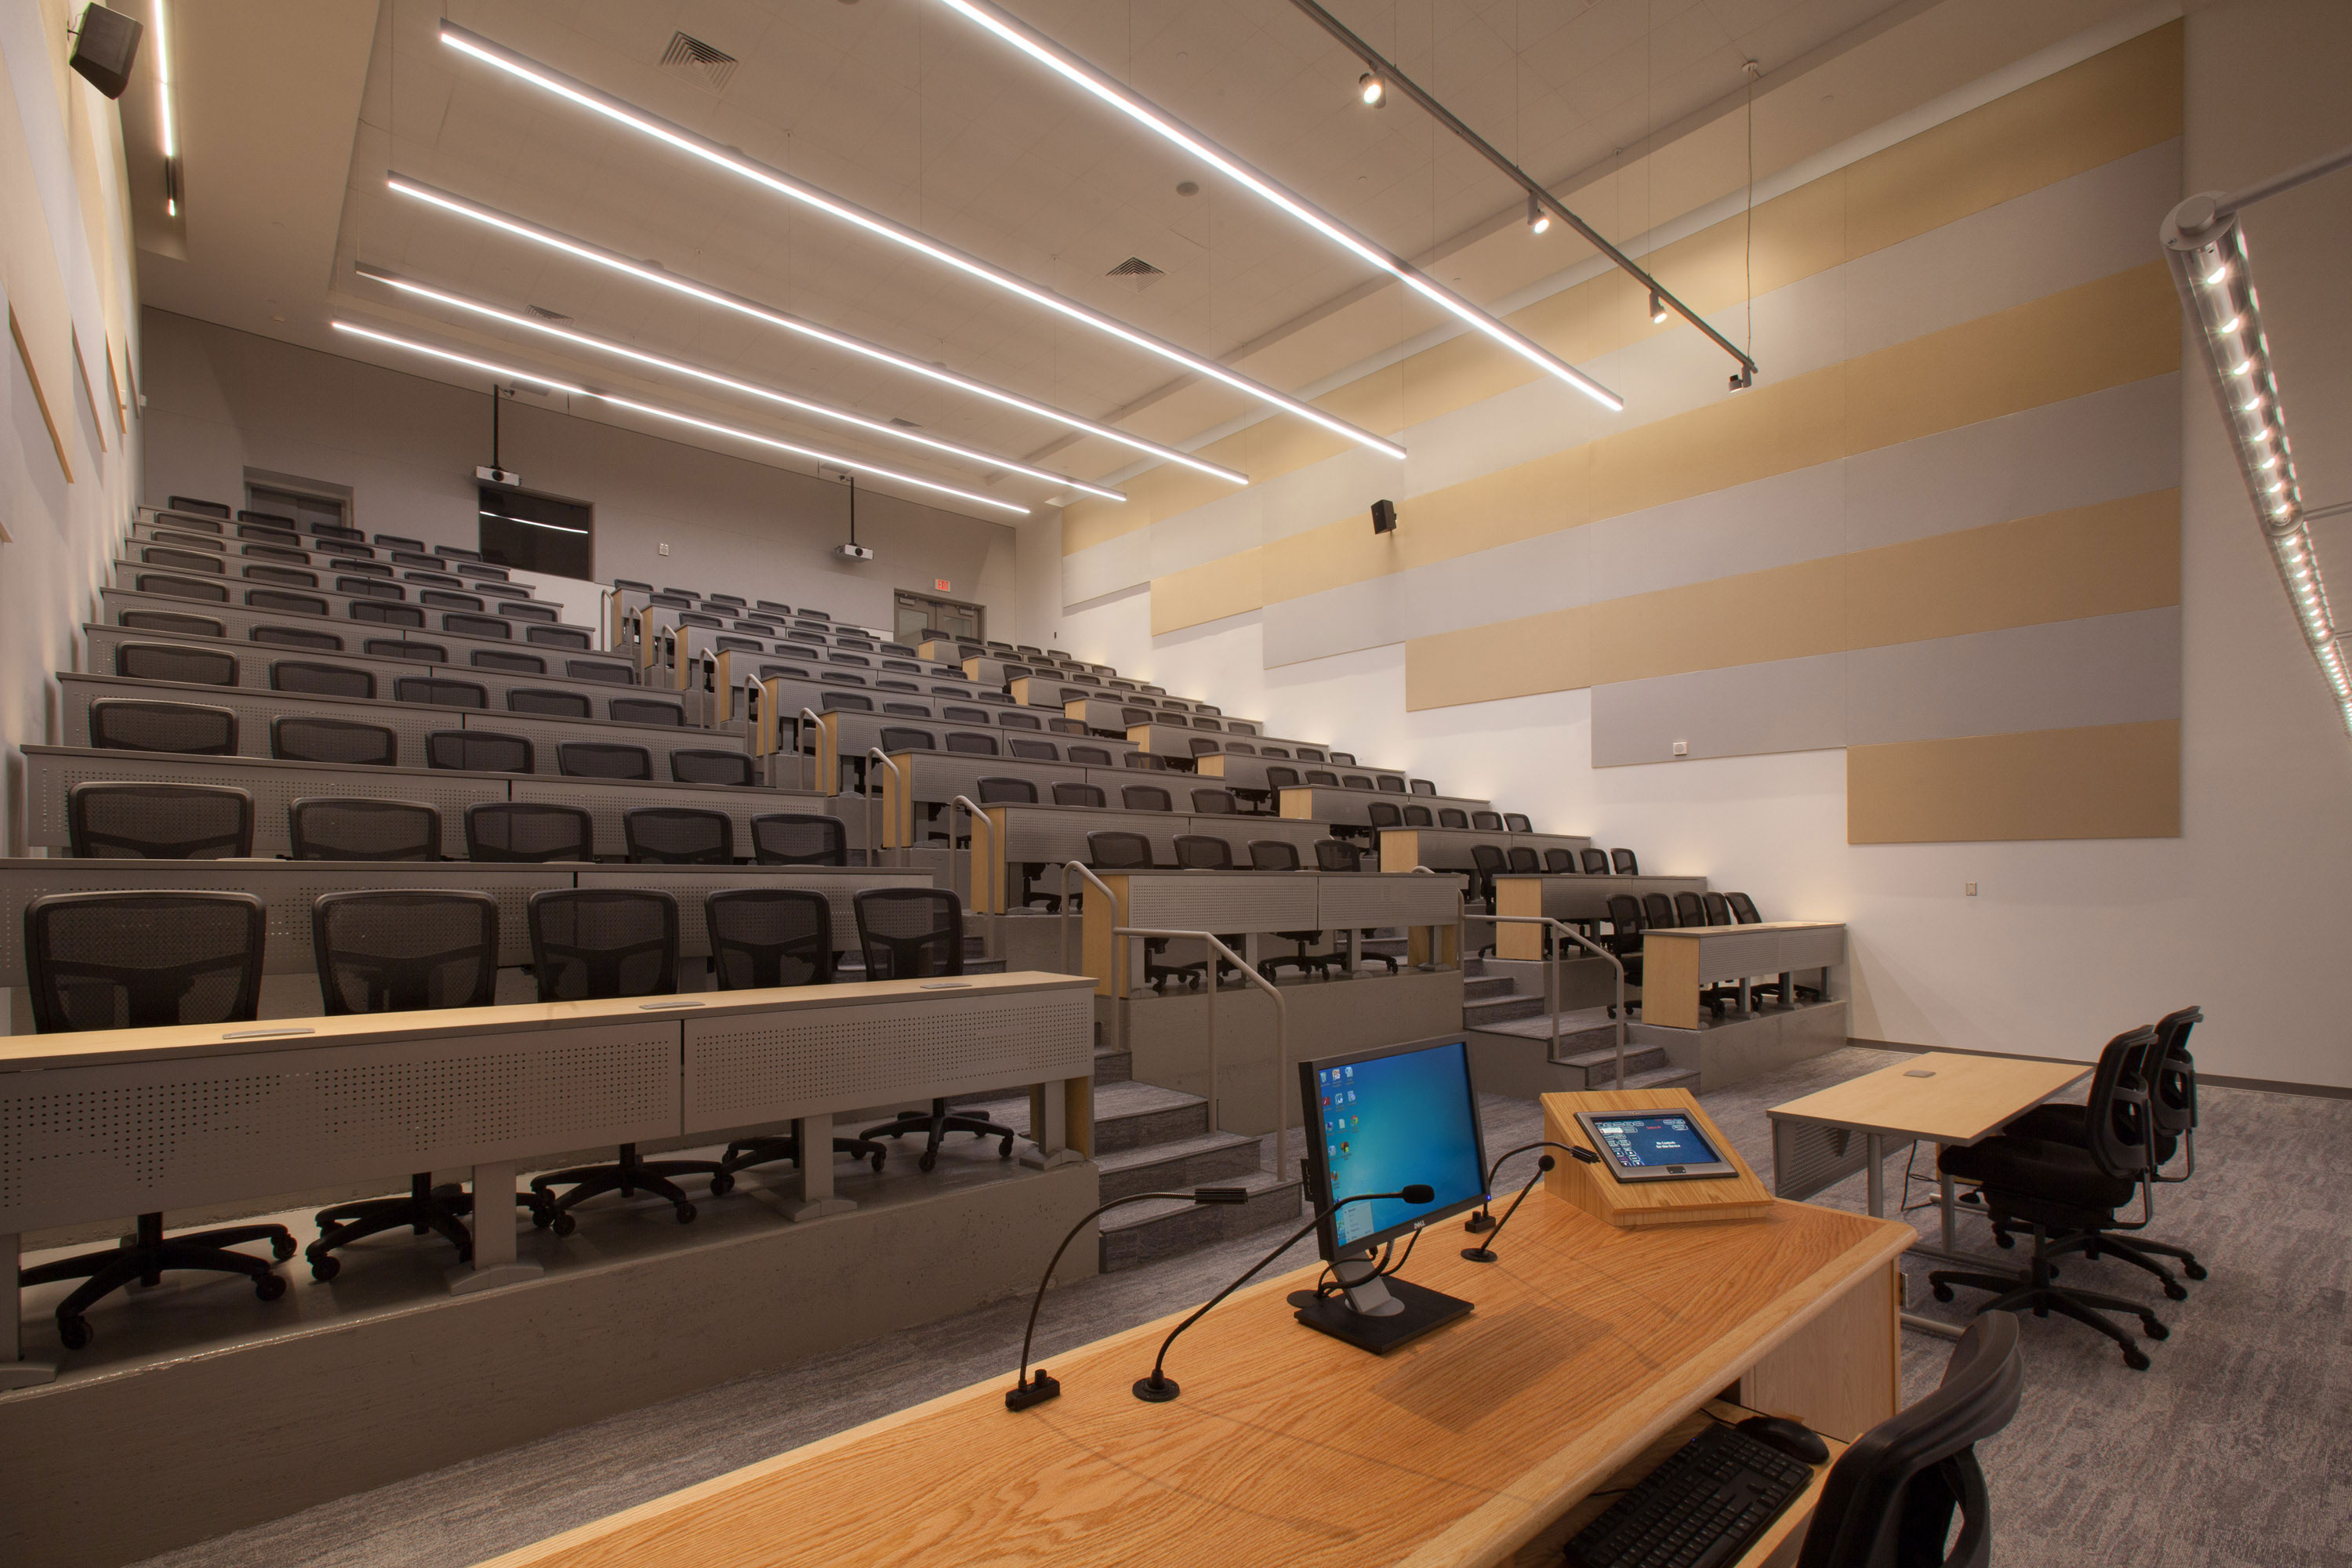 Tiered Classroom Design Standards ~ Temple university pearson and mcgonigle halls renovation